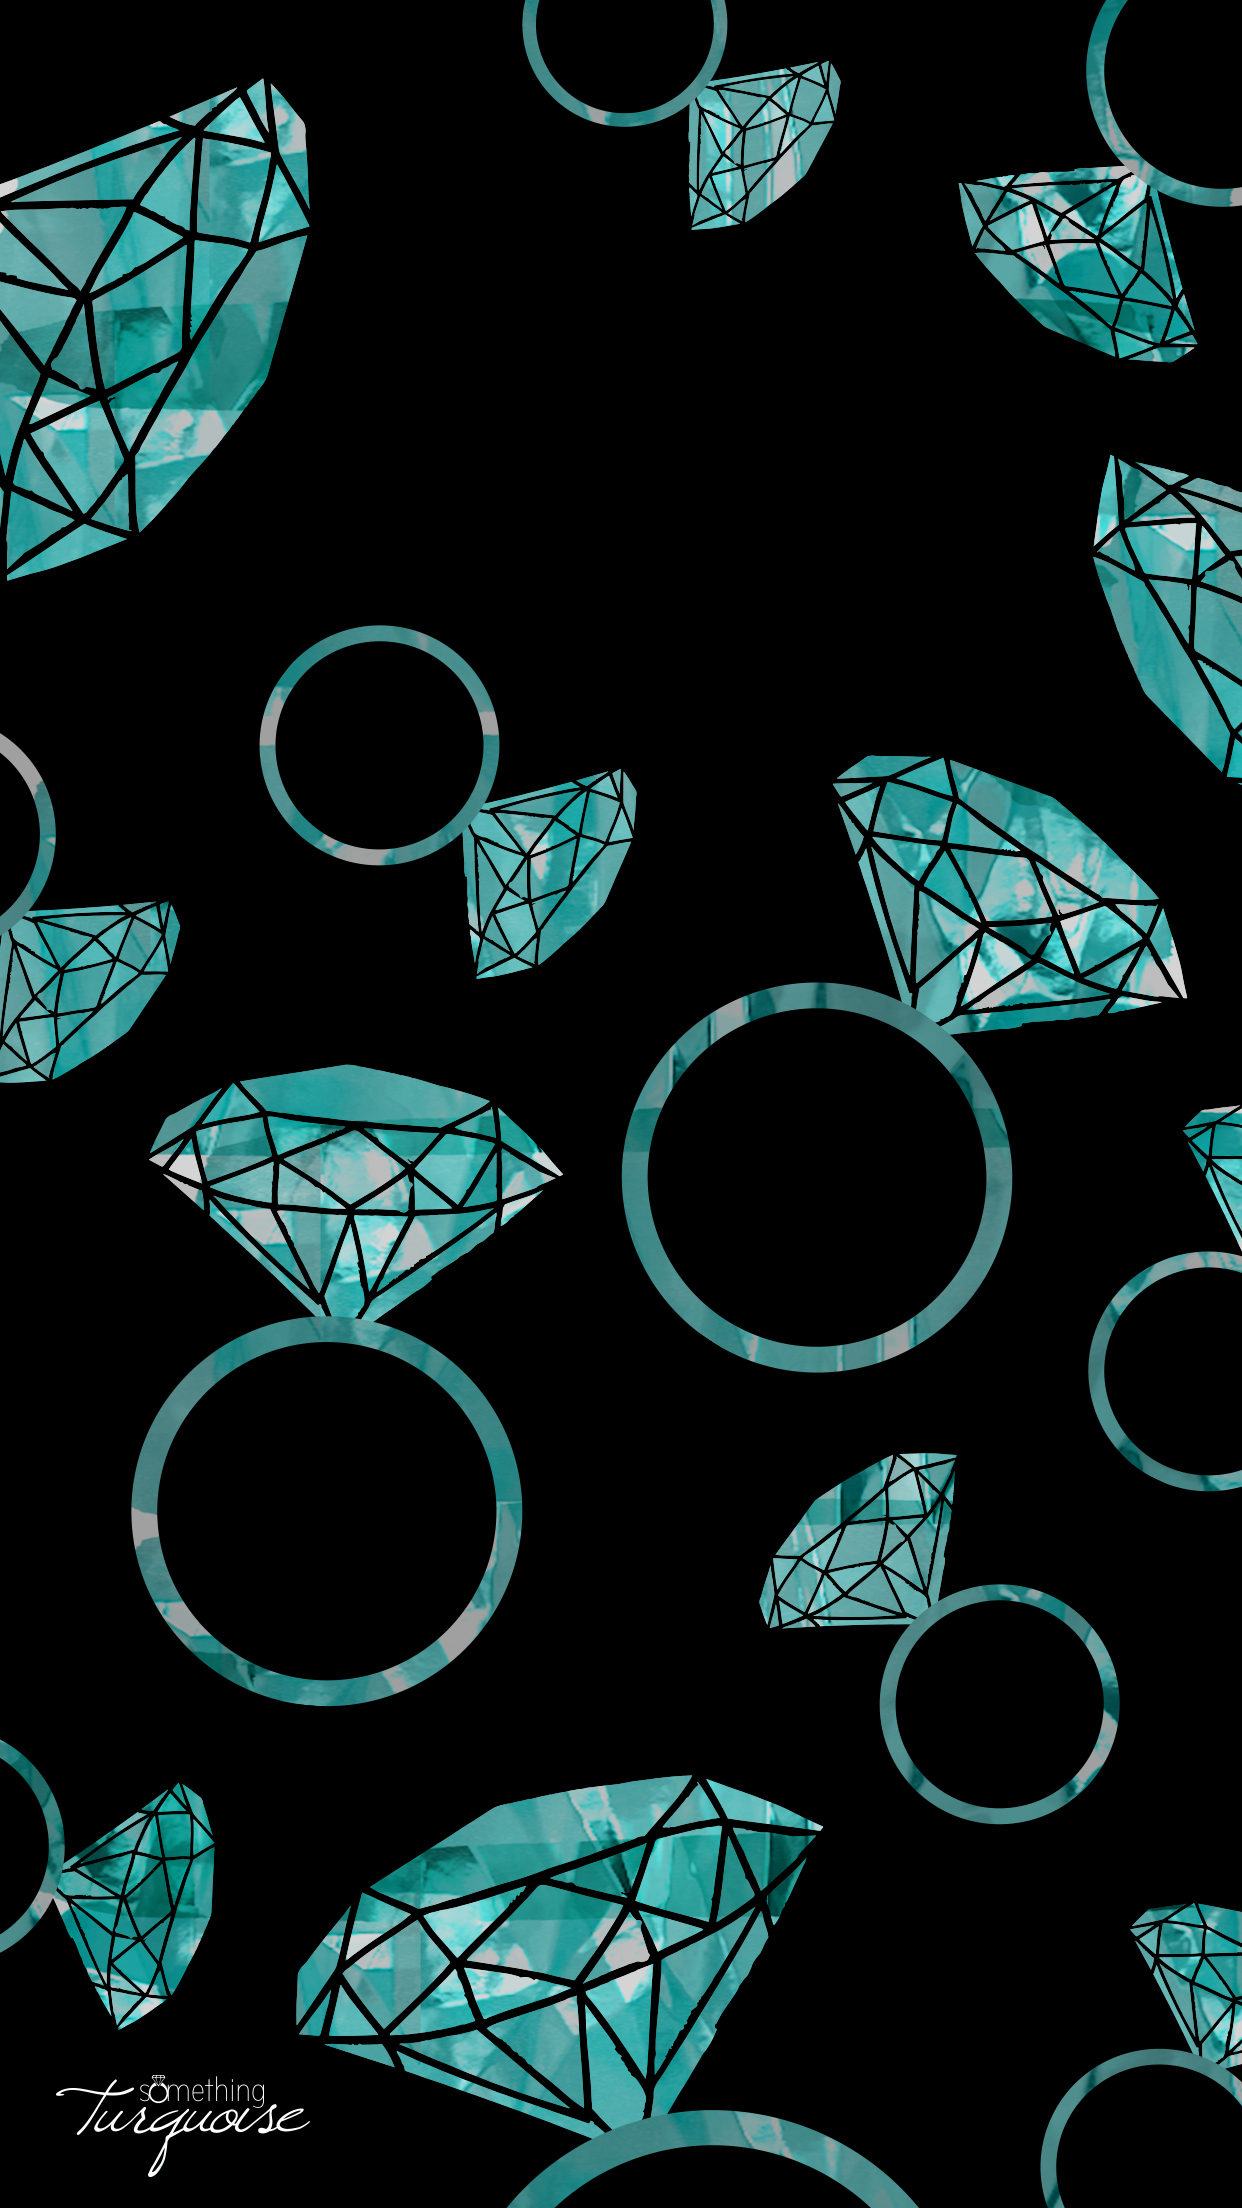 FREE turquoise diamond ring iPhone wallpaper!